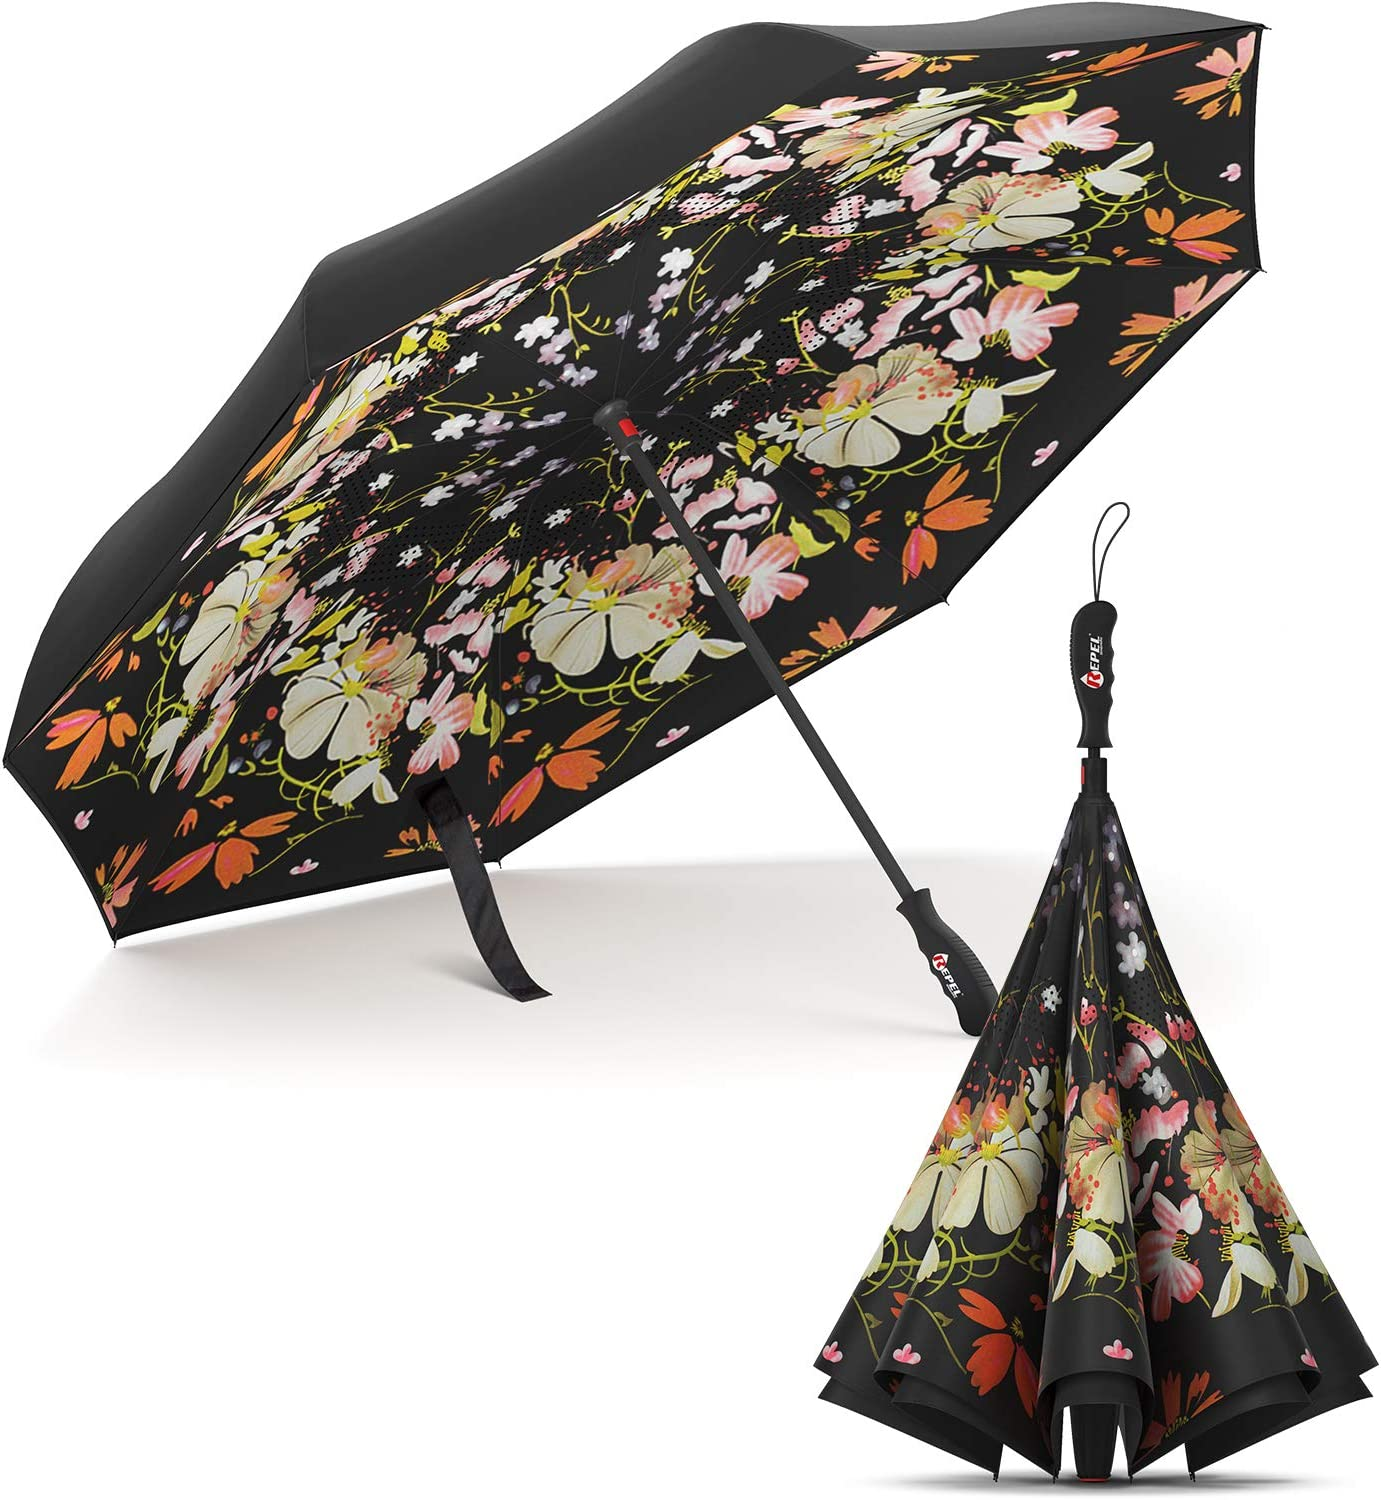 We OFFer at cheap prices Repel Umbrella Reverse - Reversibl Inverted Down Upside sale